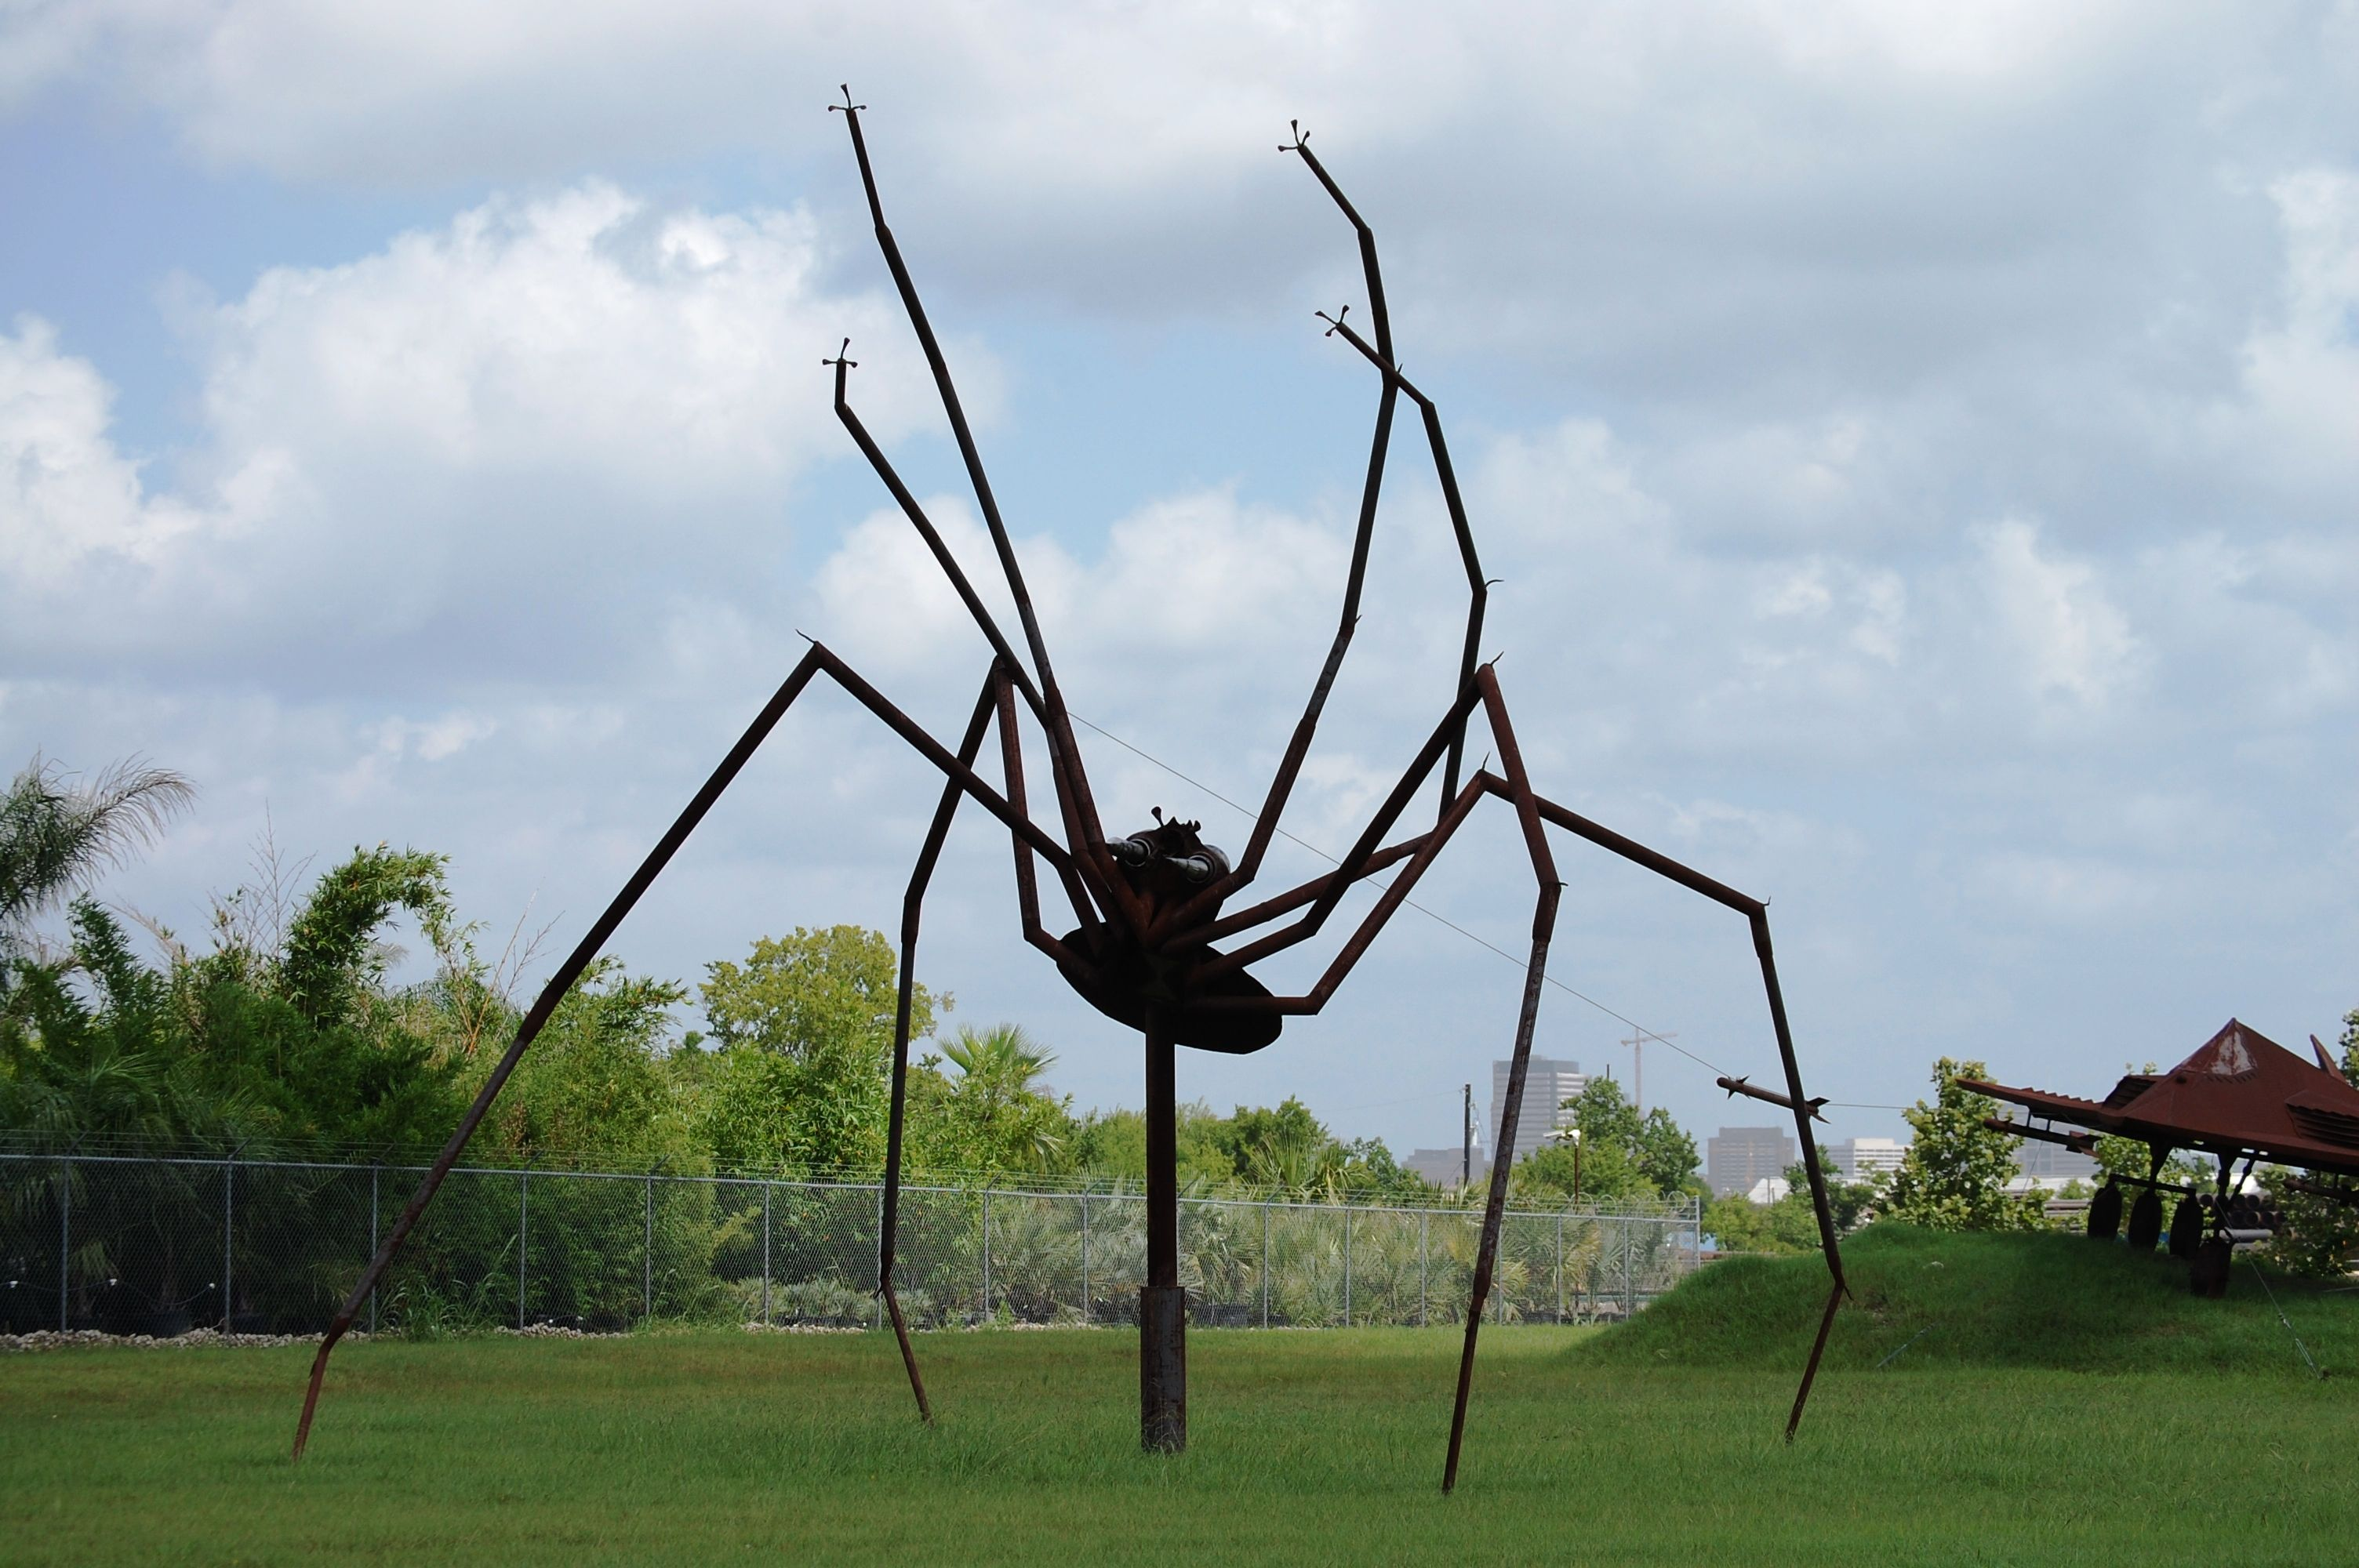 Huge scary spider - one of many giant scrap metal animals at